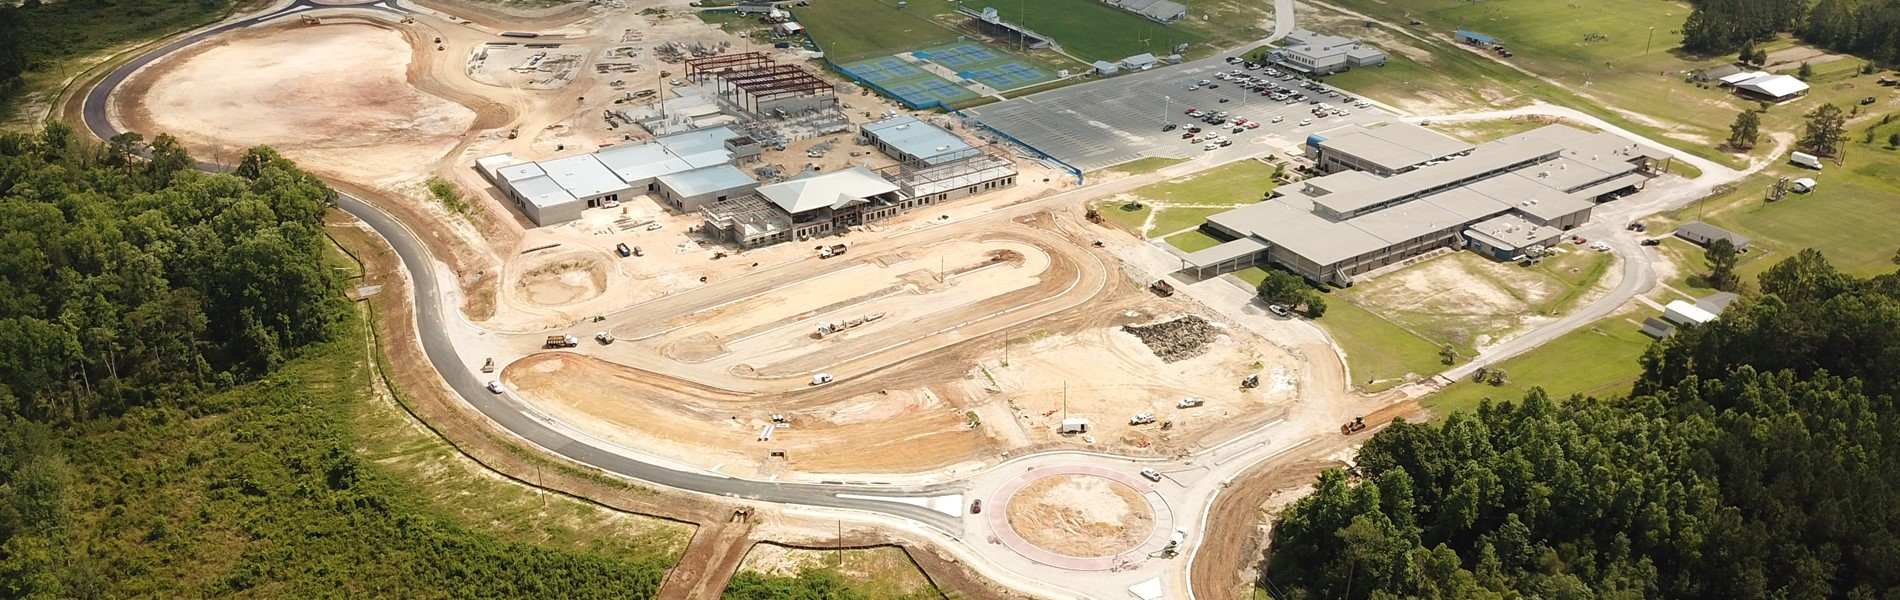 New high school construction progress